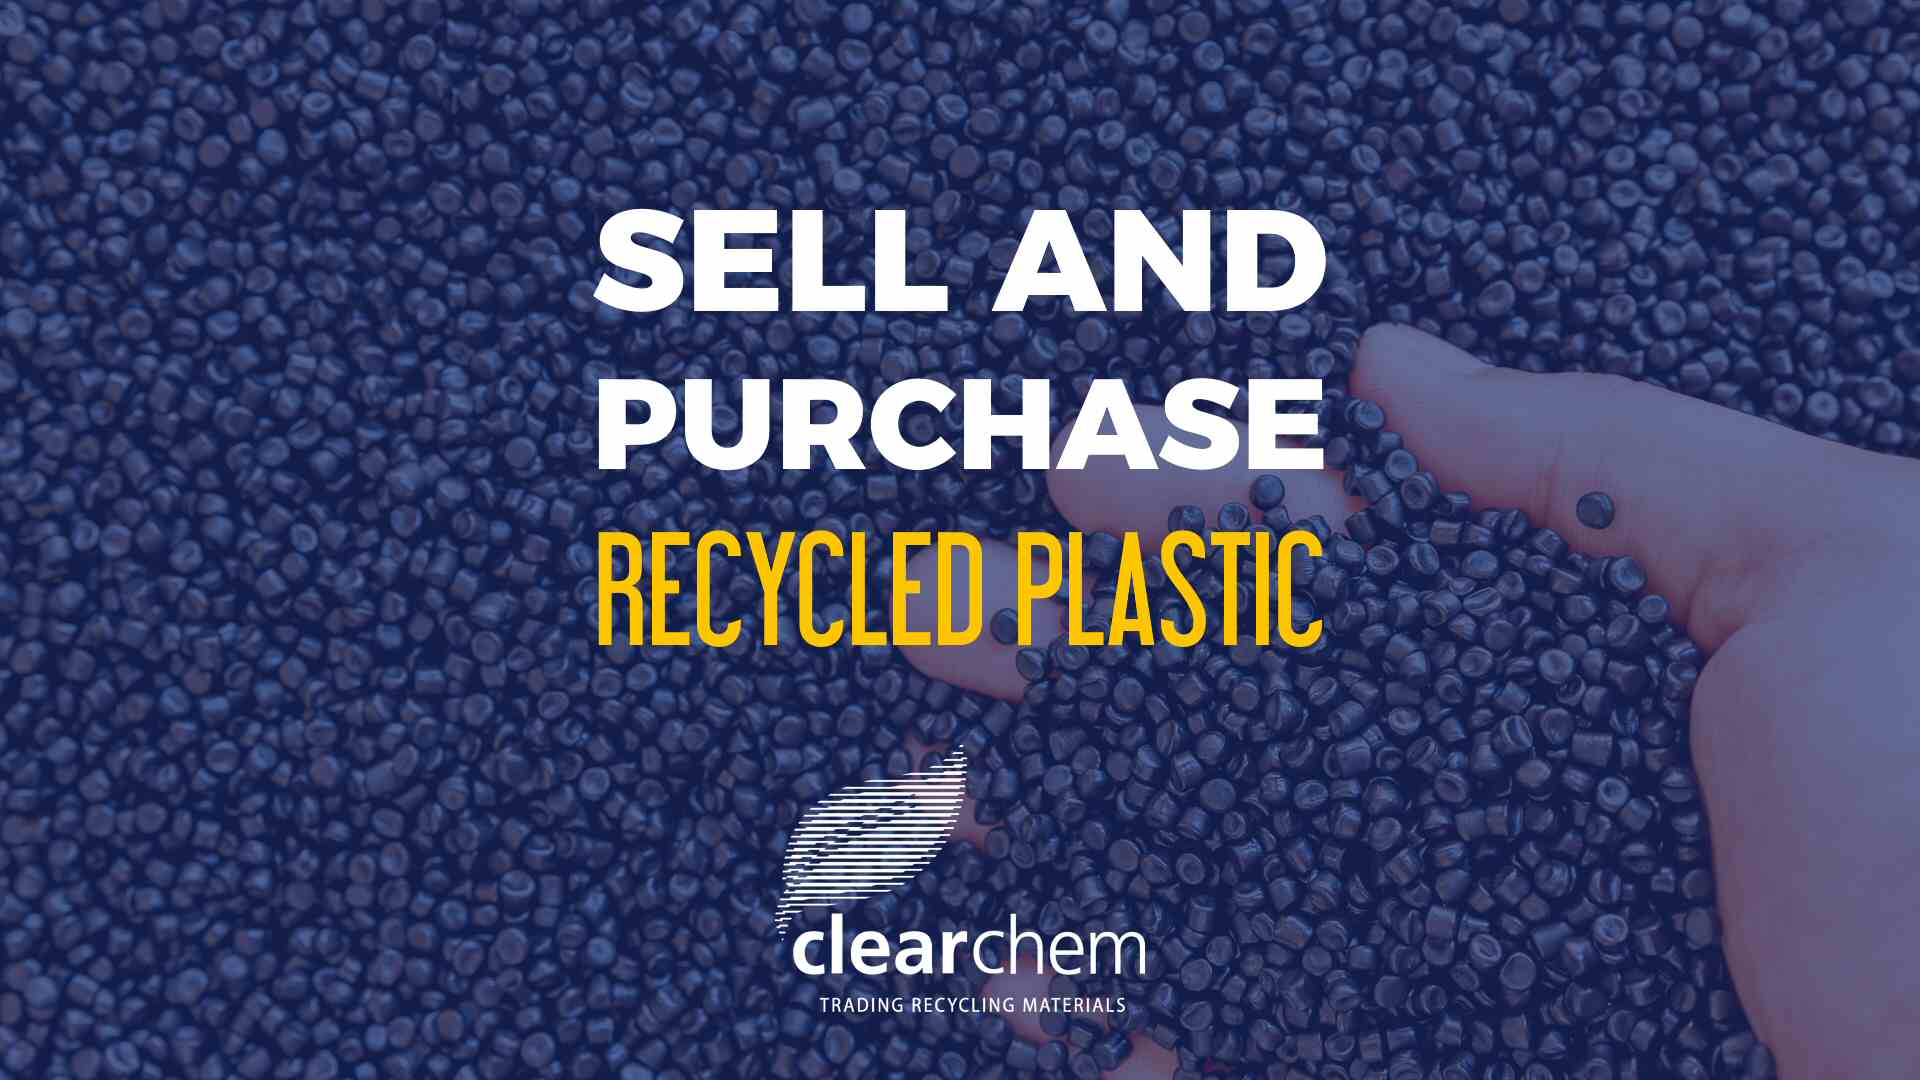 Sell and purchase recycled plastic - Clearchem